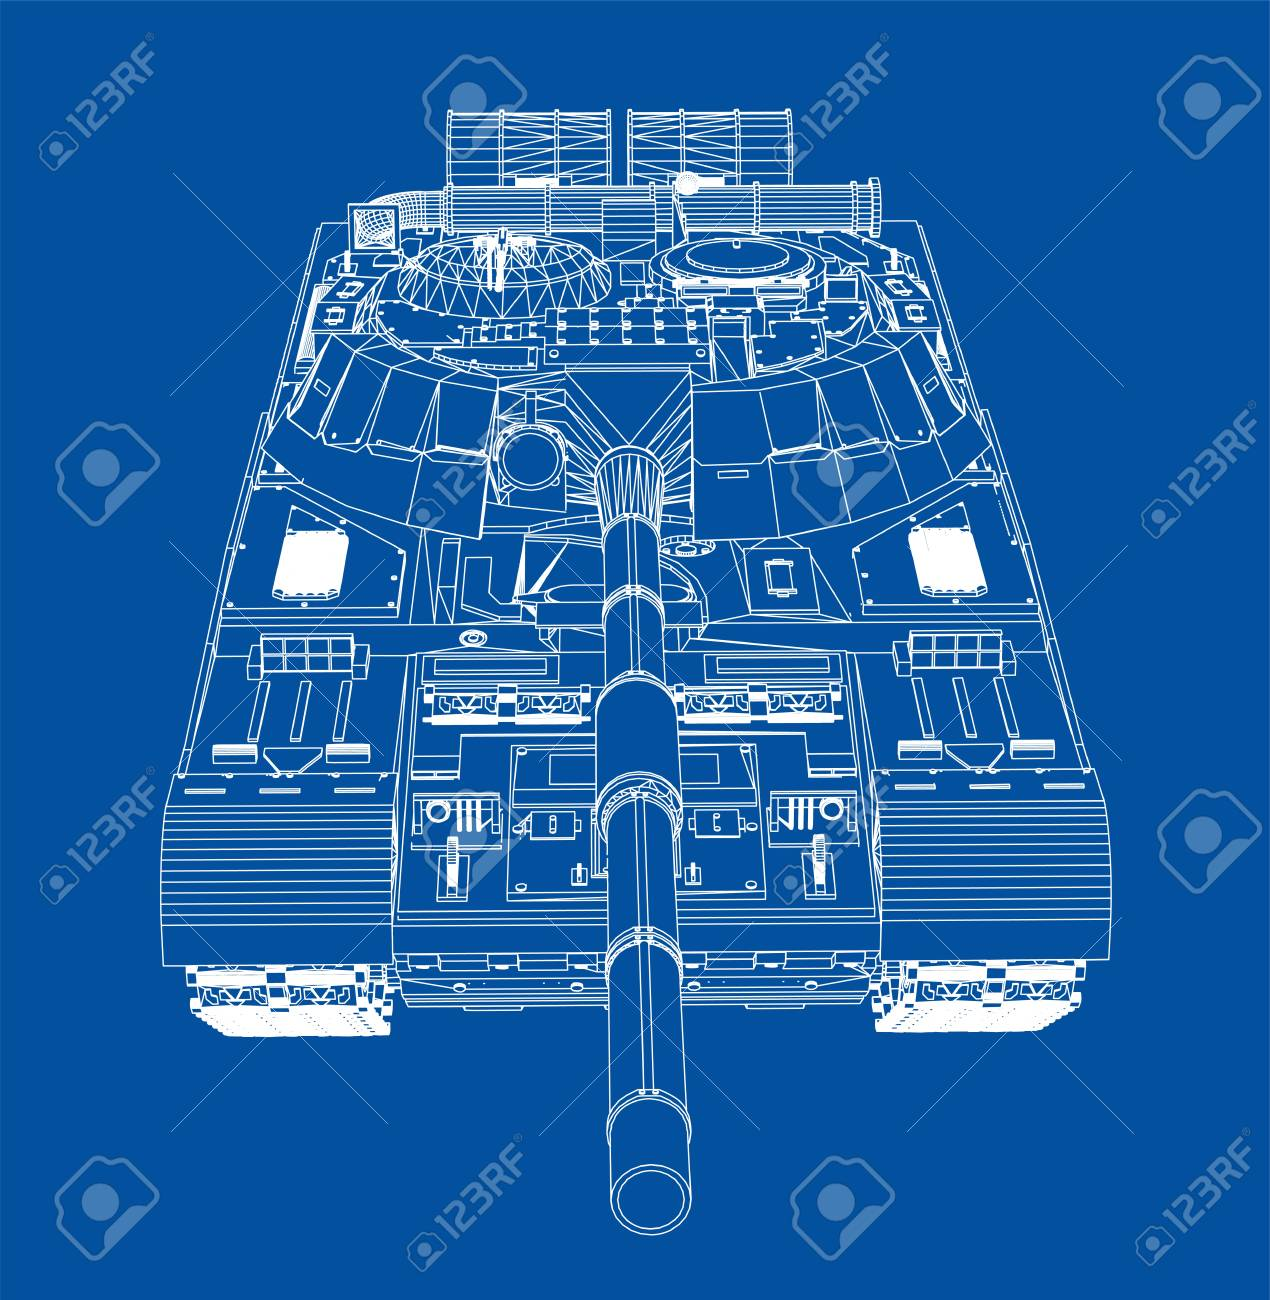 Blueprint Of Realistic Tank Vector Eps10 Format Rendering Of